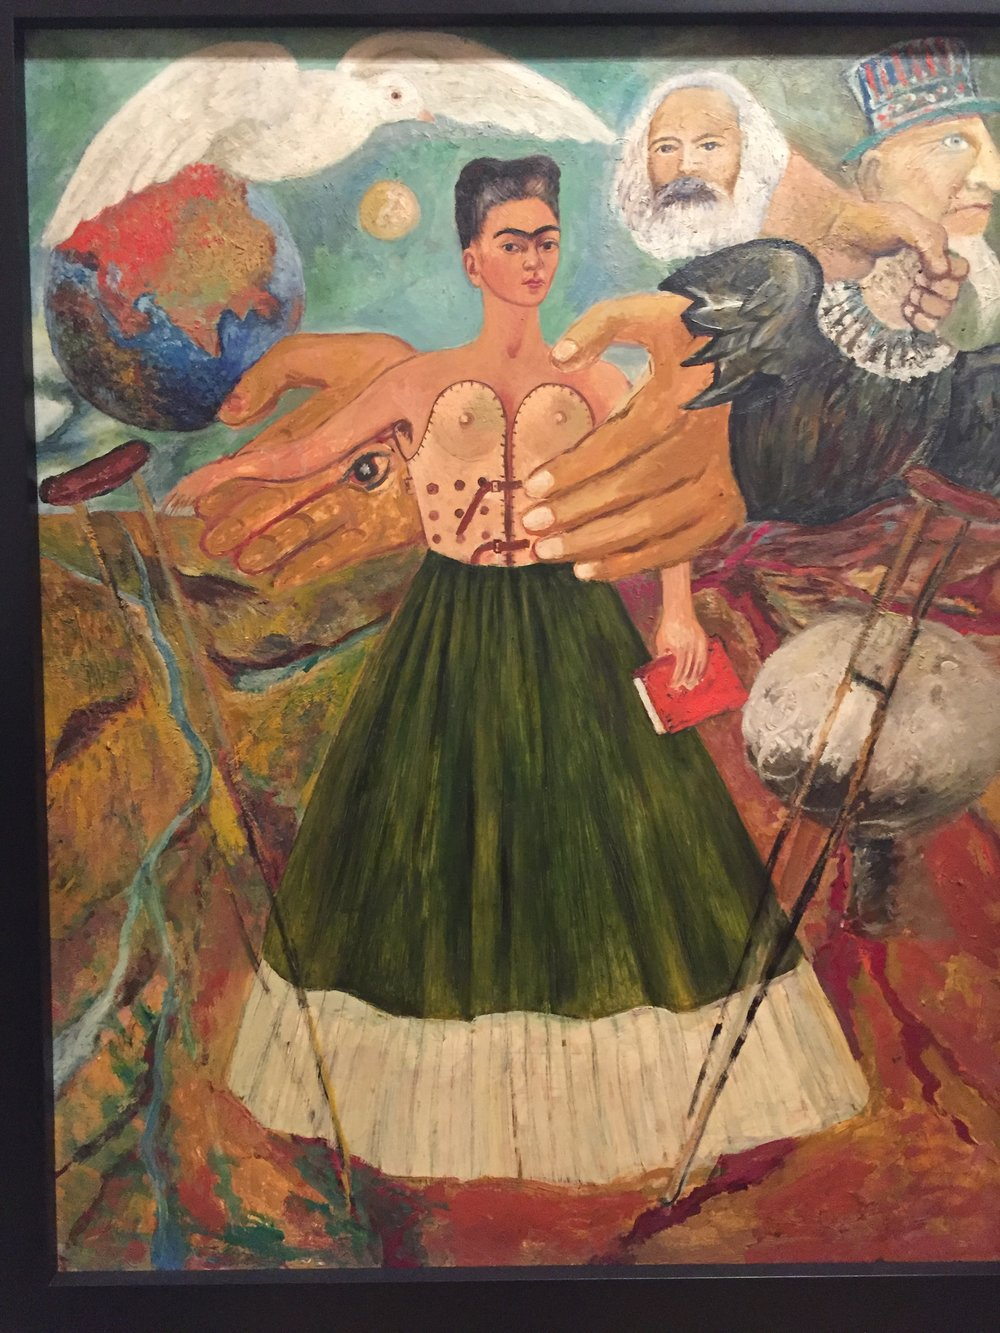 WHILE MANY ARTISTS AT THE TIME FOCUSED ON PAINTING GRAND MURALS, MANY OF FRIDA'S WORKS WERE SELF PORTRAITS THAT CONVEYED HER SELF REFLECTION